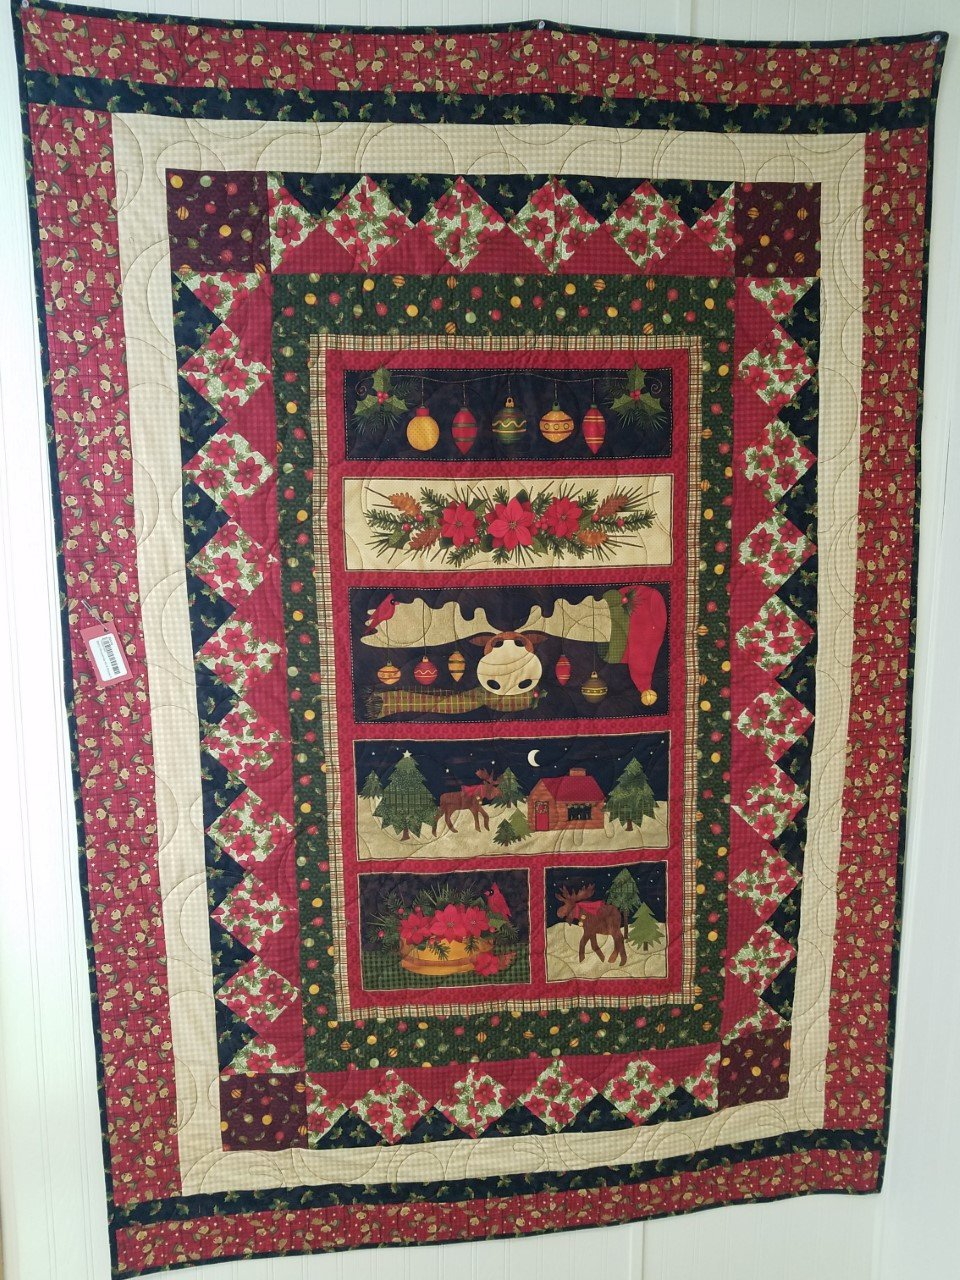 Merry Moosemas Kit-A Moose for Christmas -COMPLETELY FINISHED SAMPLE